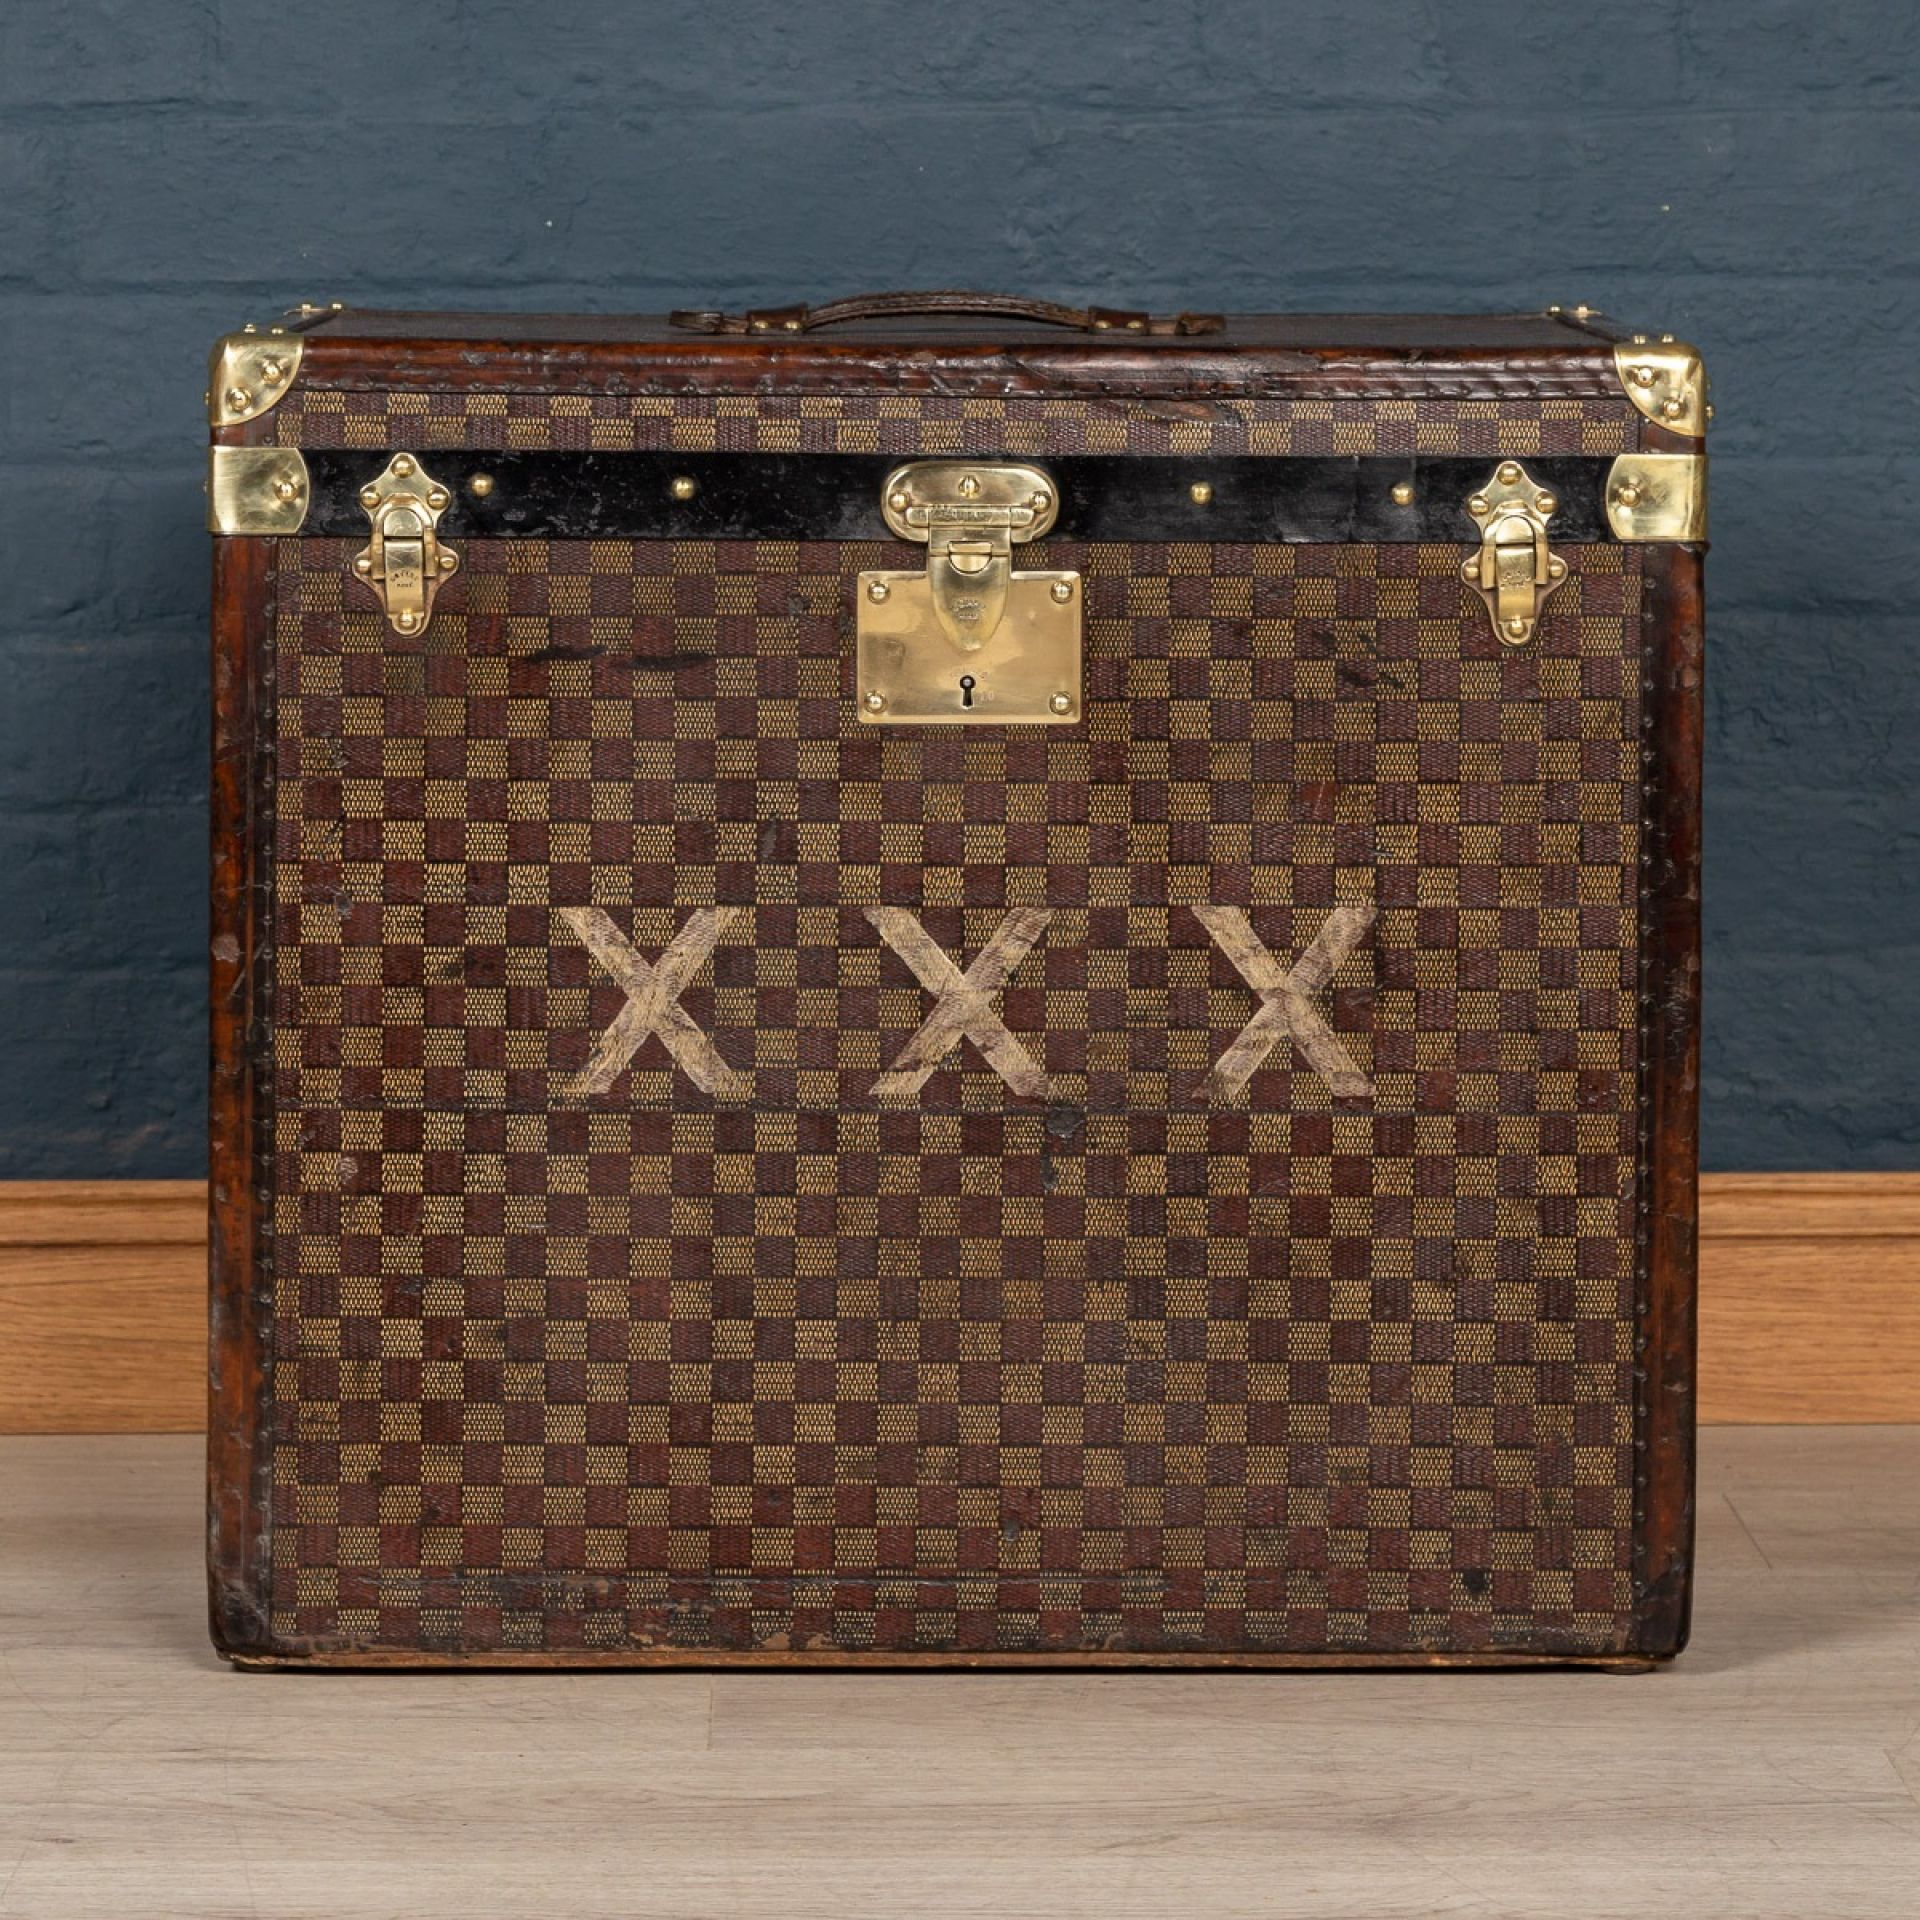 ANTIQUE 20thC GOYARD HAT TRUNK, FRANCE c.1900